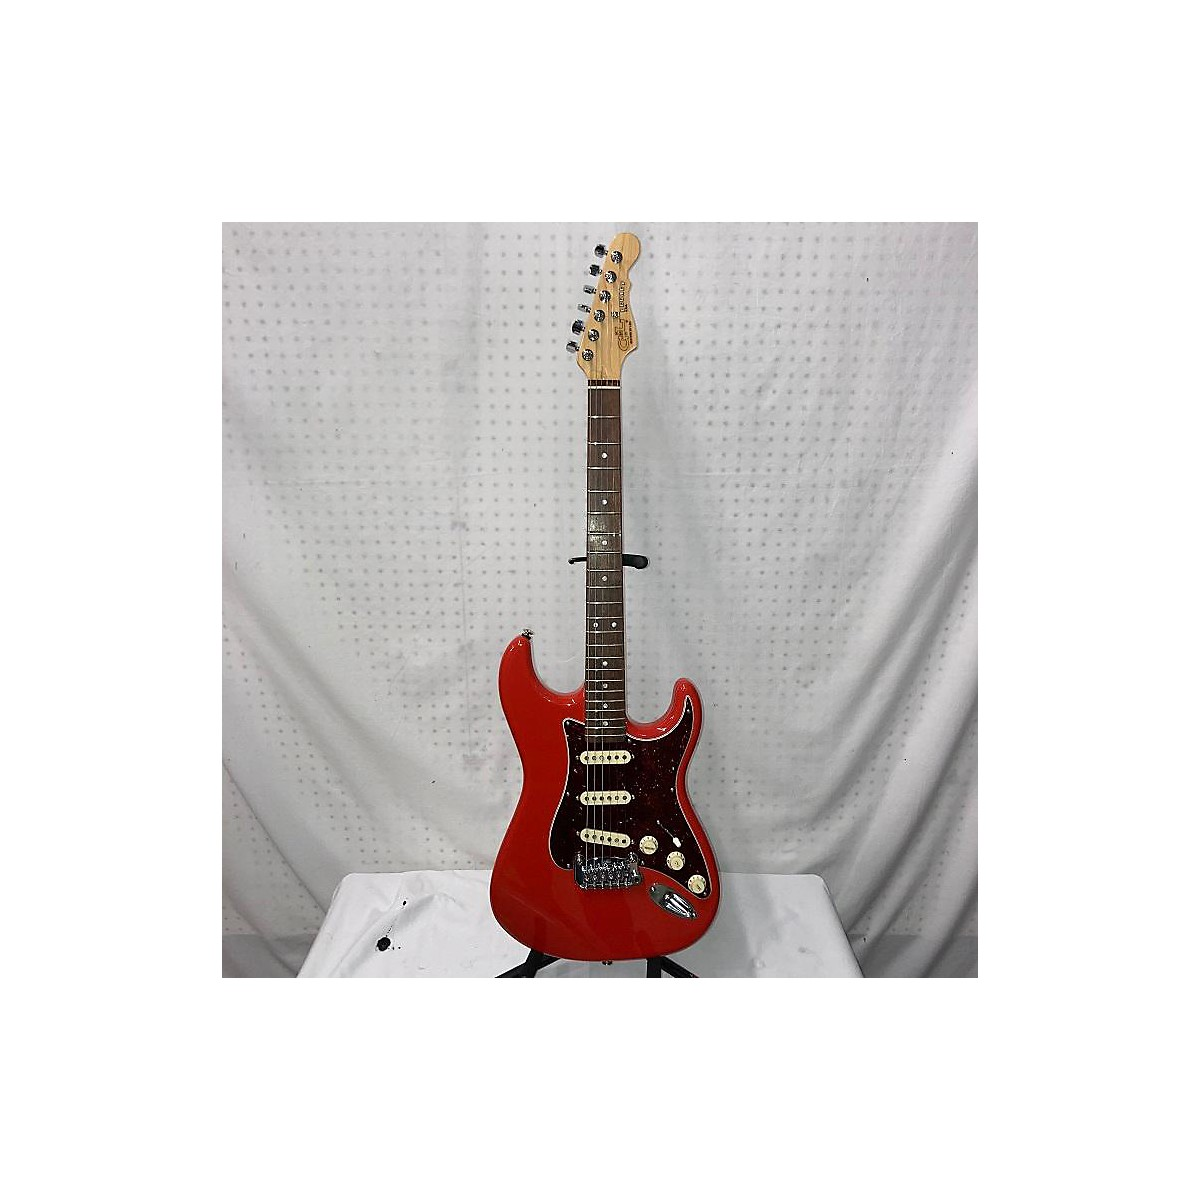 G&L FULLERTON DELUXE LEGACY Solid Body Electric Guitar